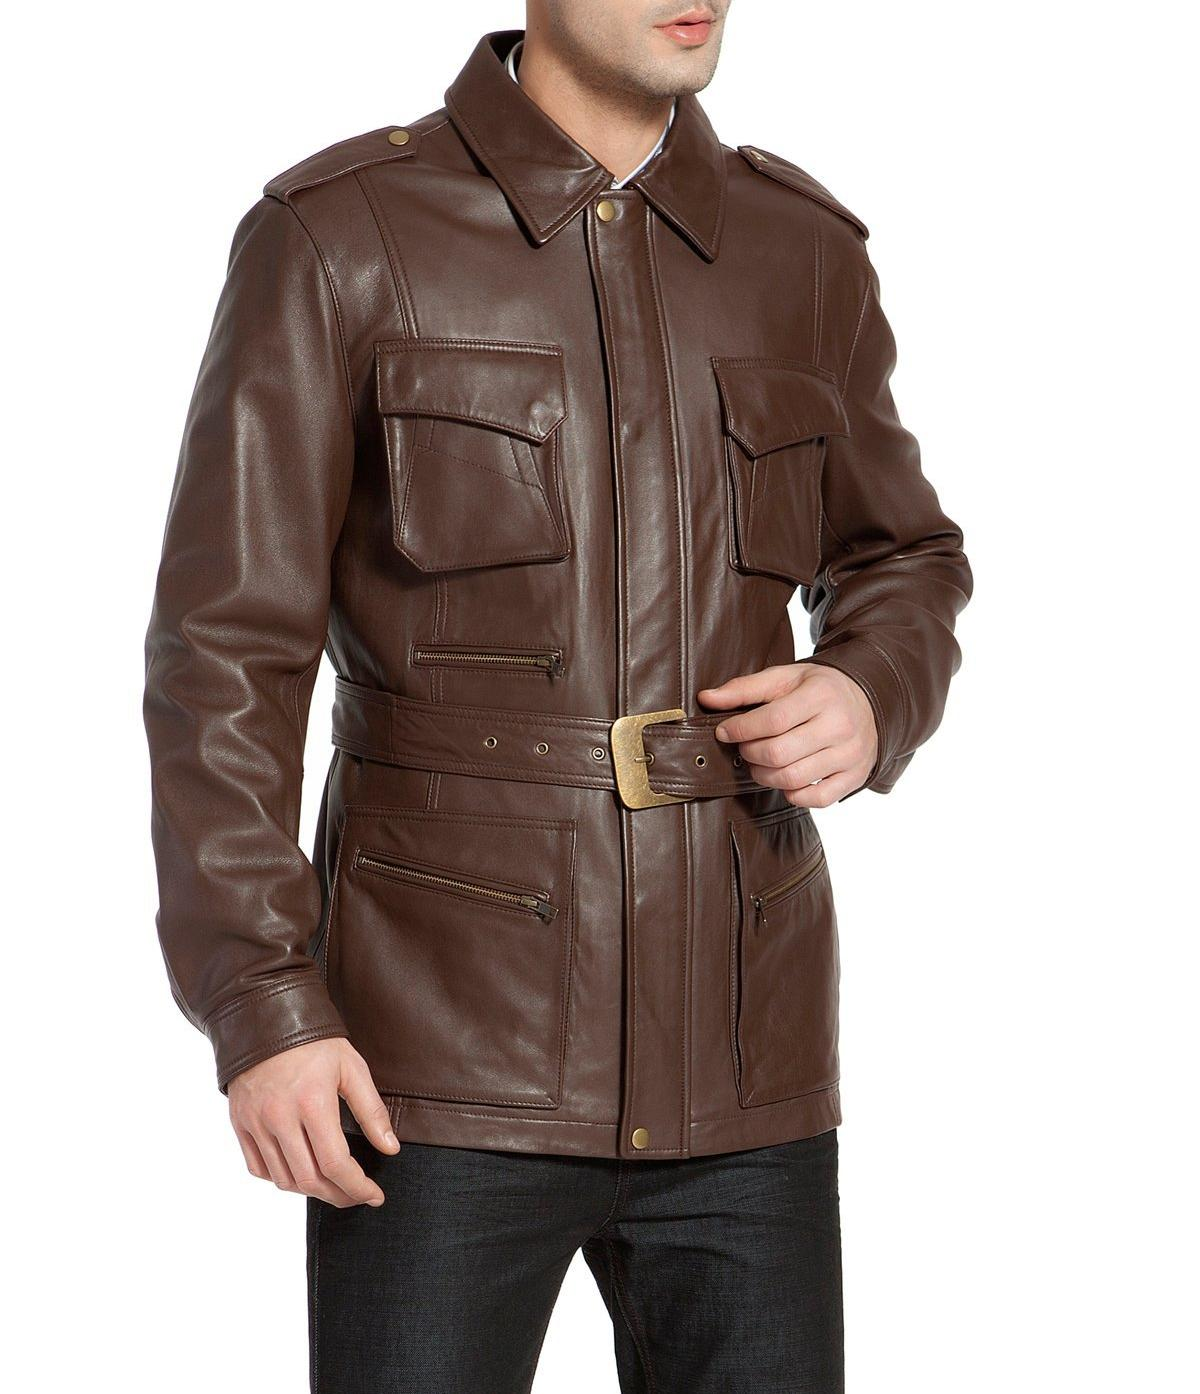 Coats: Free Shipping on orders over $45 at fishingrodde.cf - Your Online Men's Outerwear Store! Get 5% in rewards with Club O! Blu Martini Men's Double Breasted Trench Coat. 13 Reviews. Quick View Jack Daniels Men's Soft Shell Jacket Coat Zip Logo Whiskey Liquor JD